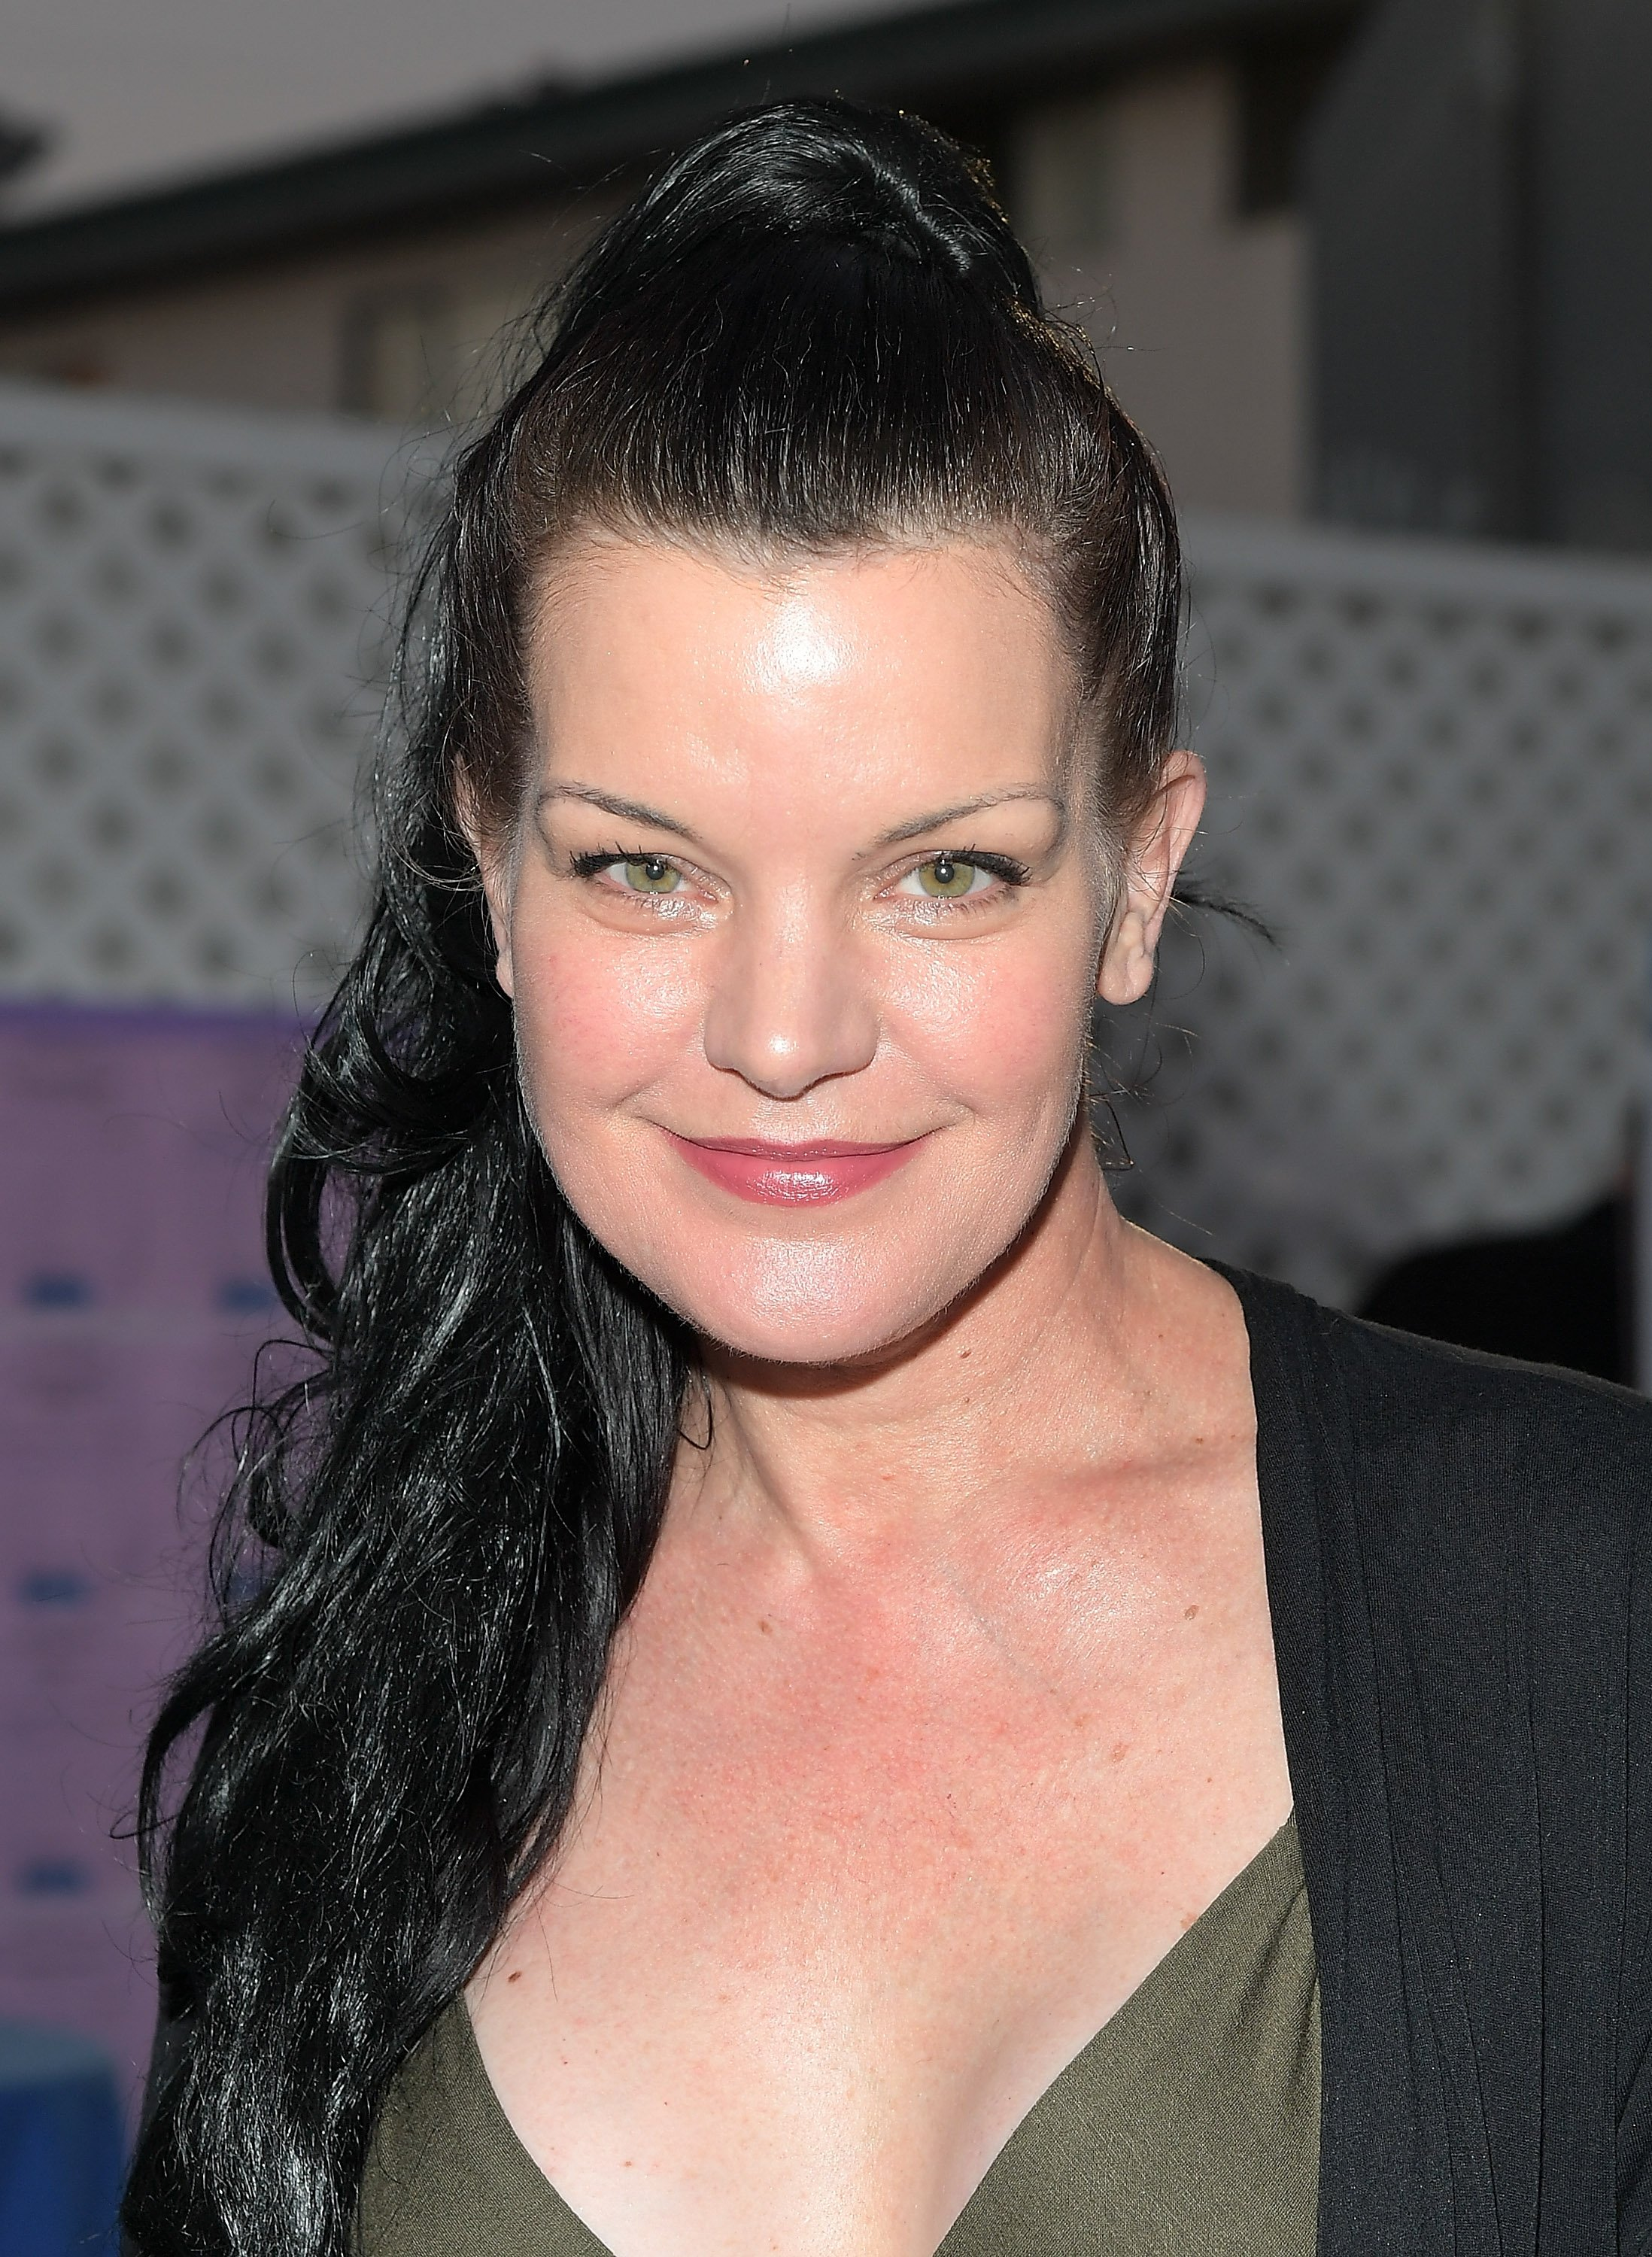 Pauley Perrette attends Project Angel Food's 2018 Angel Awards on August 18, 2018 in Hollywood, California. | Source: Getty Images